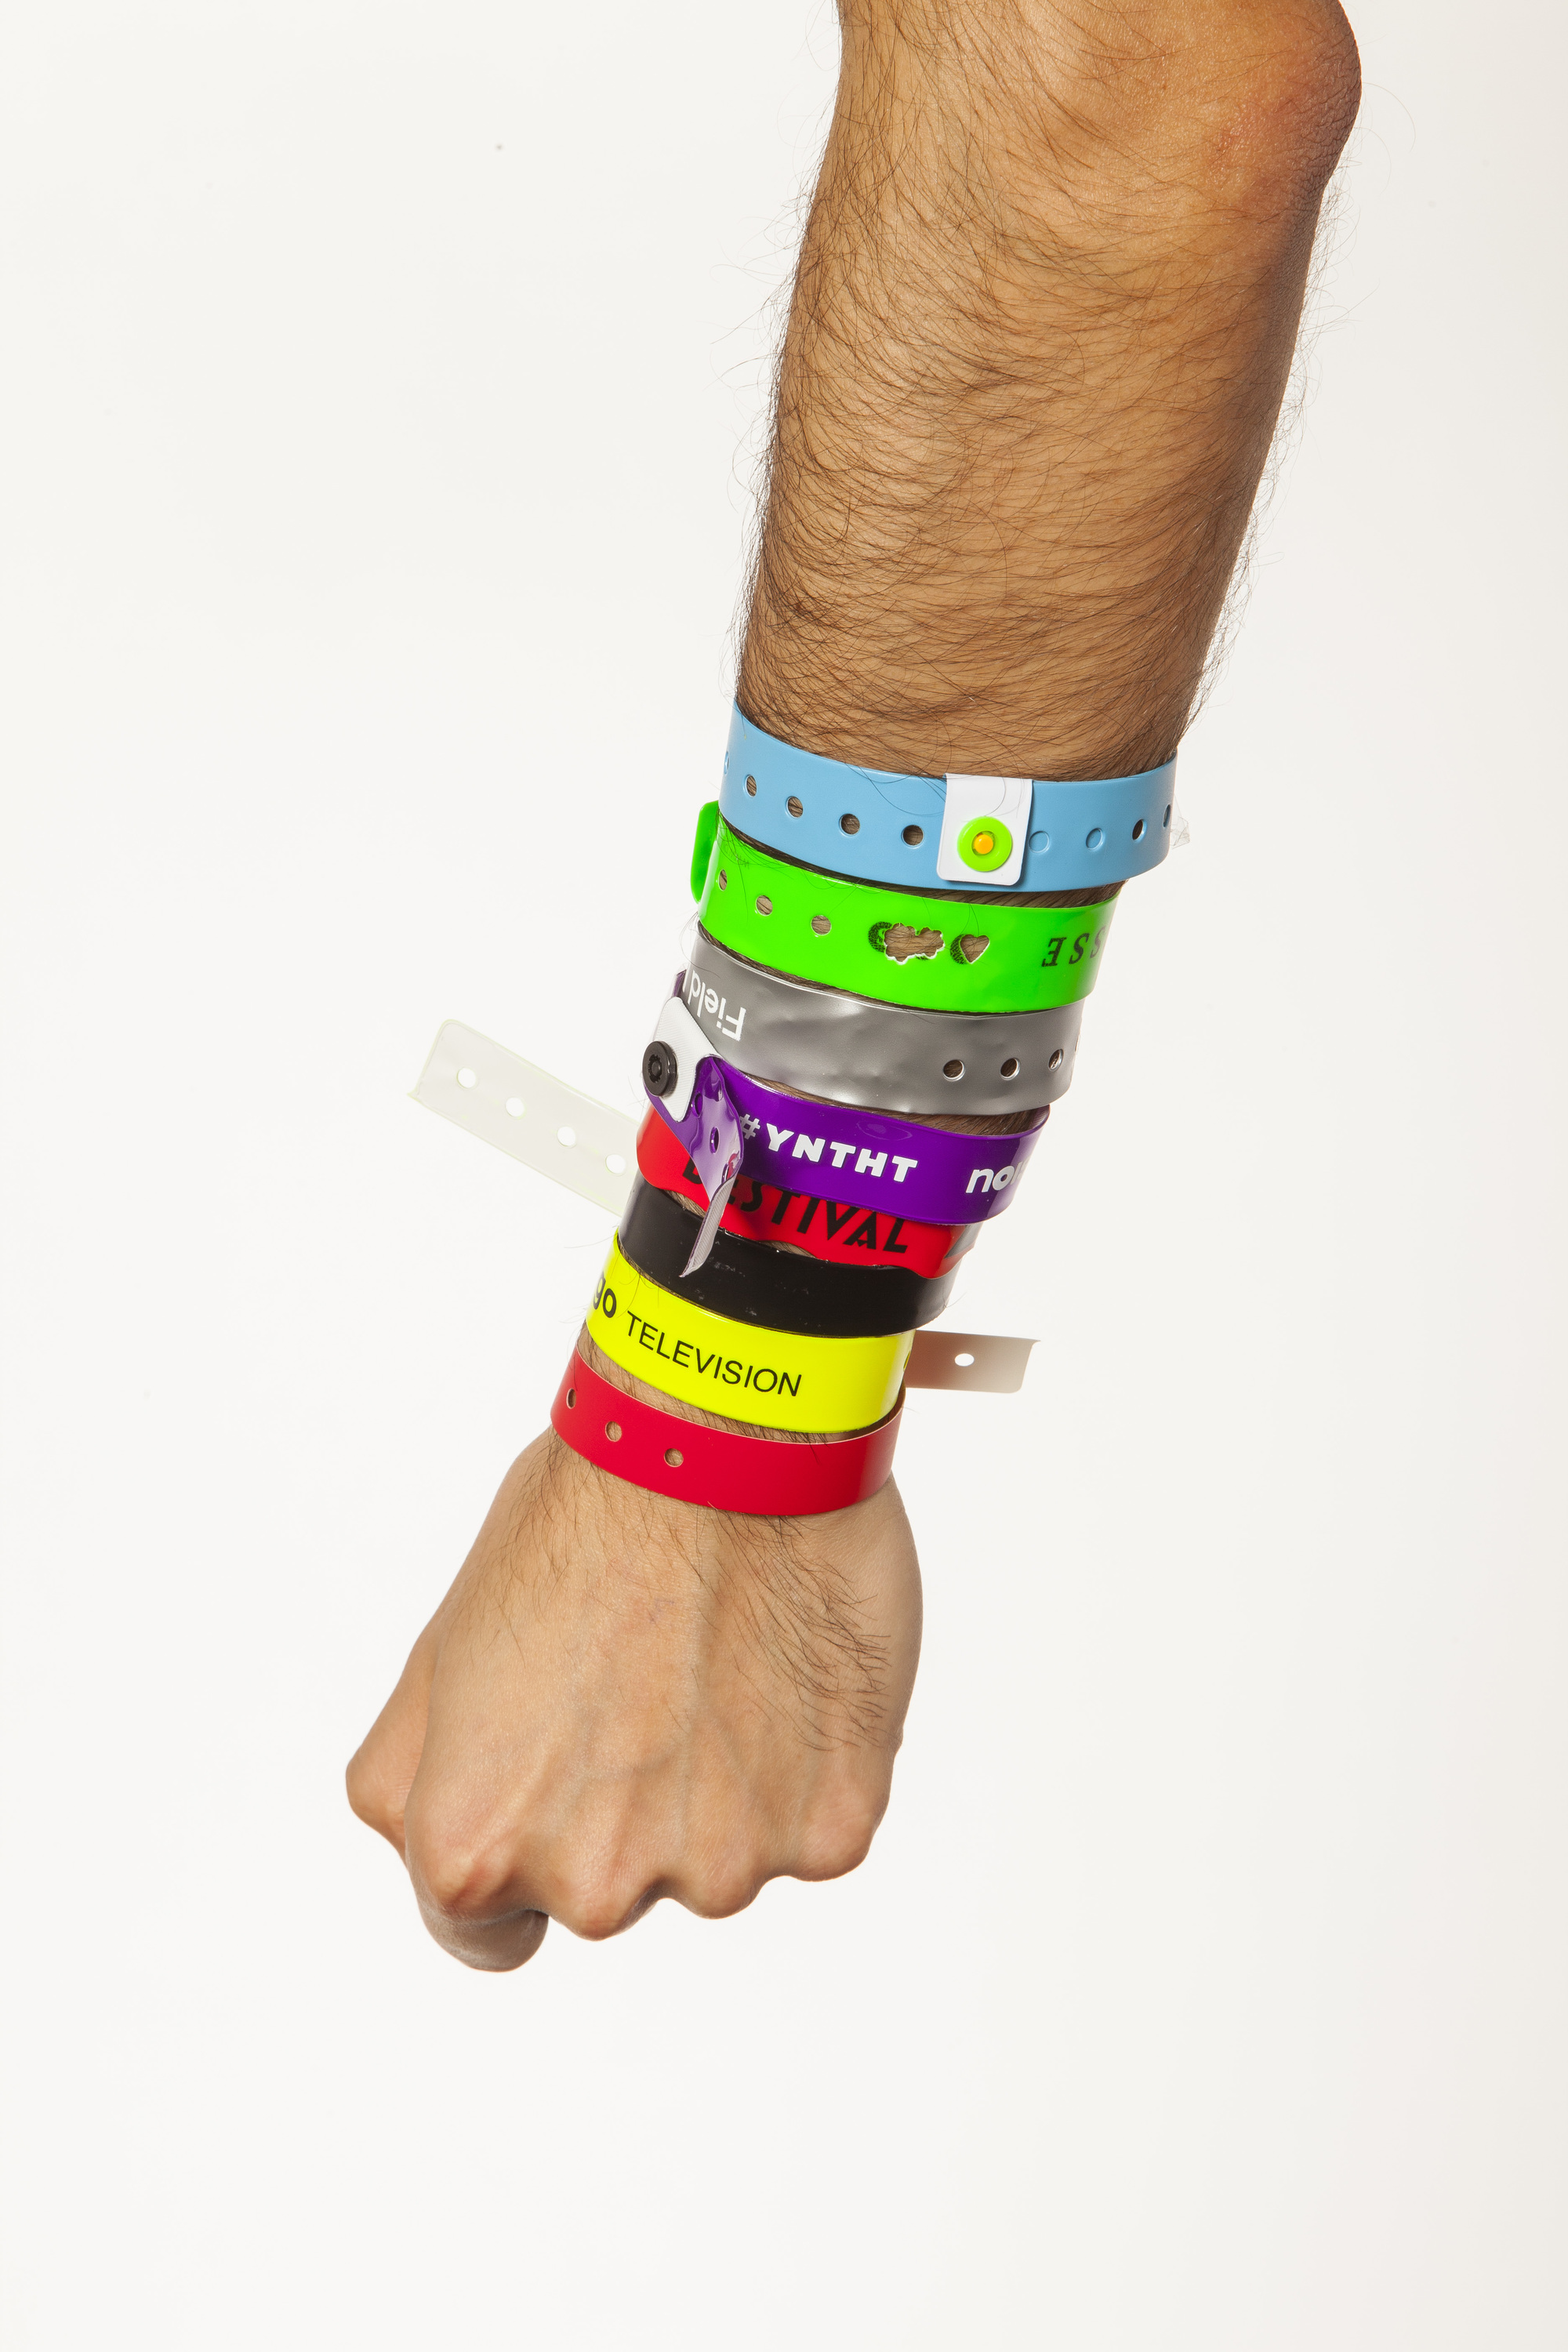 wearing world festival worlds music s image the blog oldest are you london wristband bracelet